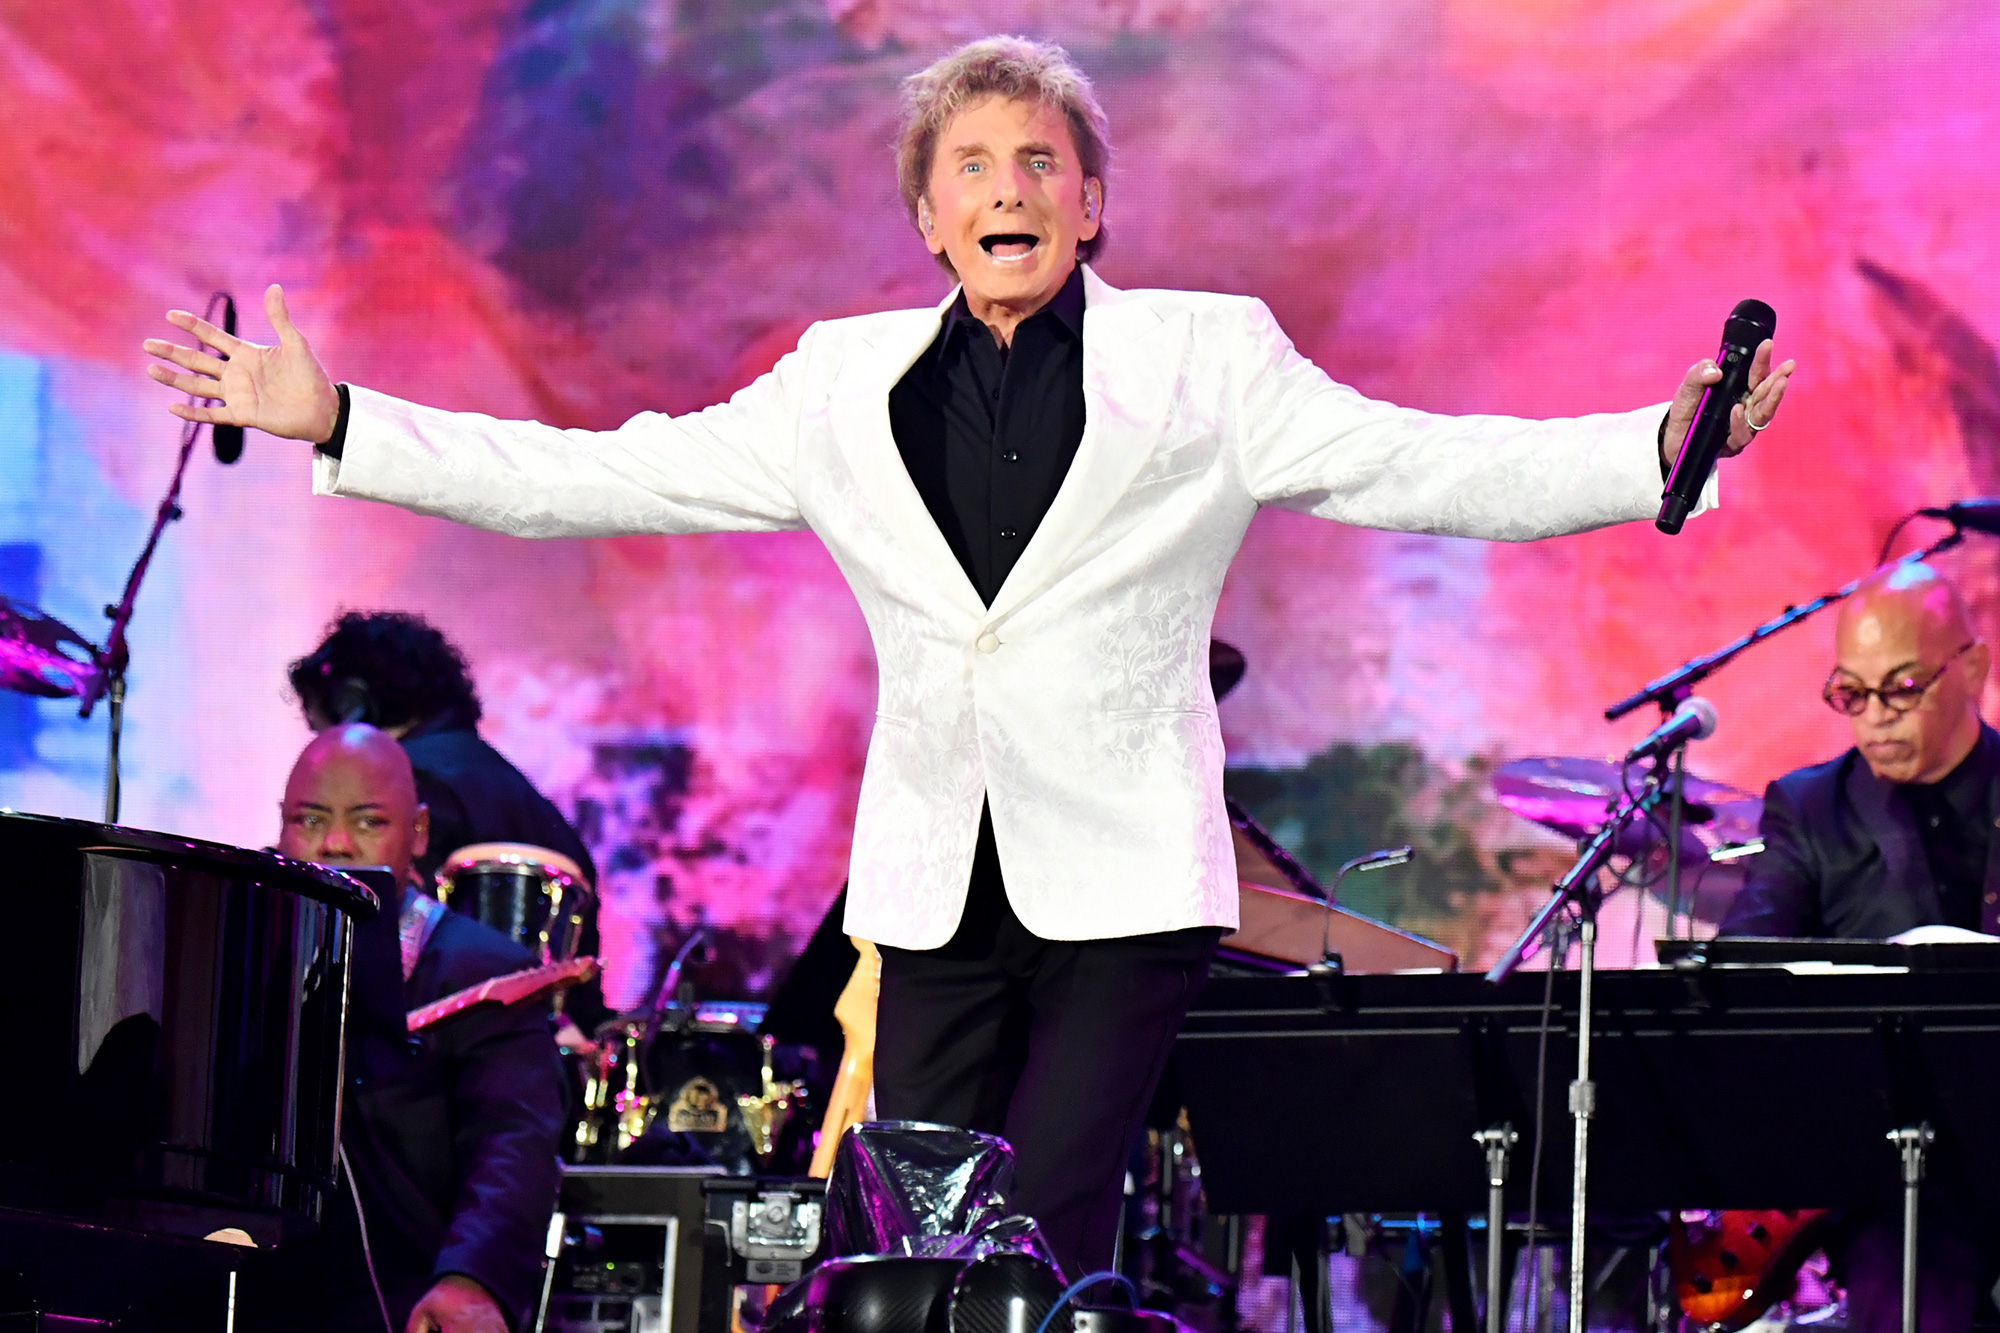 Barry Manilow performs onstage during We Love NYC: The Homecoming Concert Produced by NYC, Clive Davis, and Live Nation on August 21, 2021 in New York City.